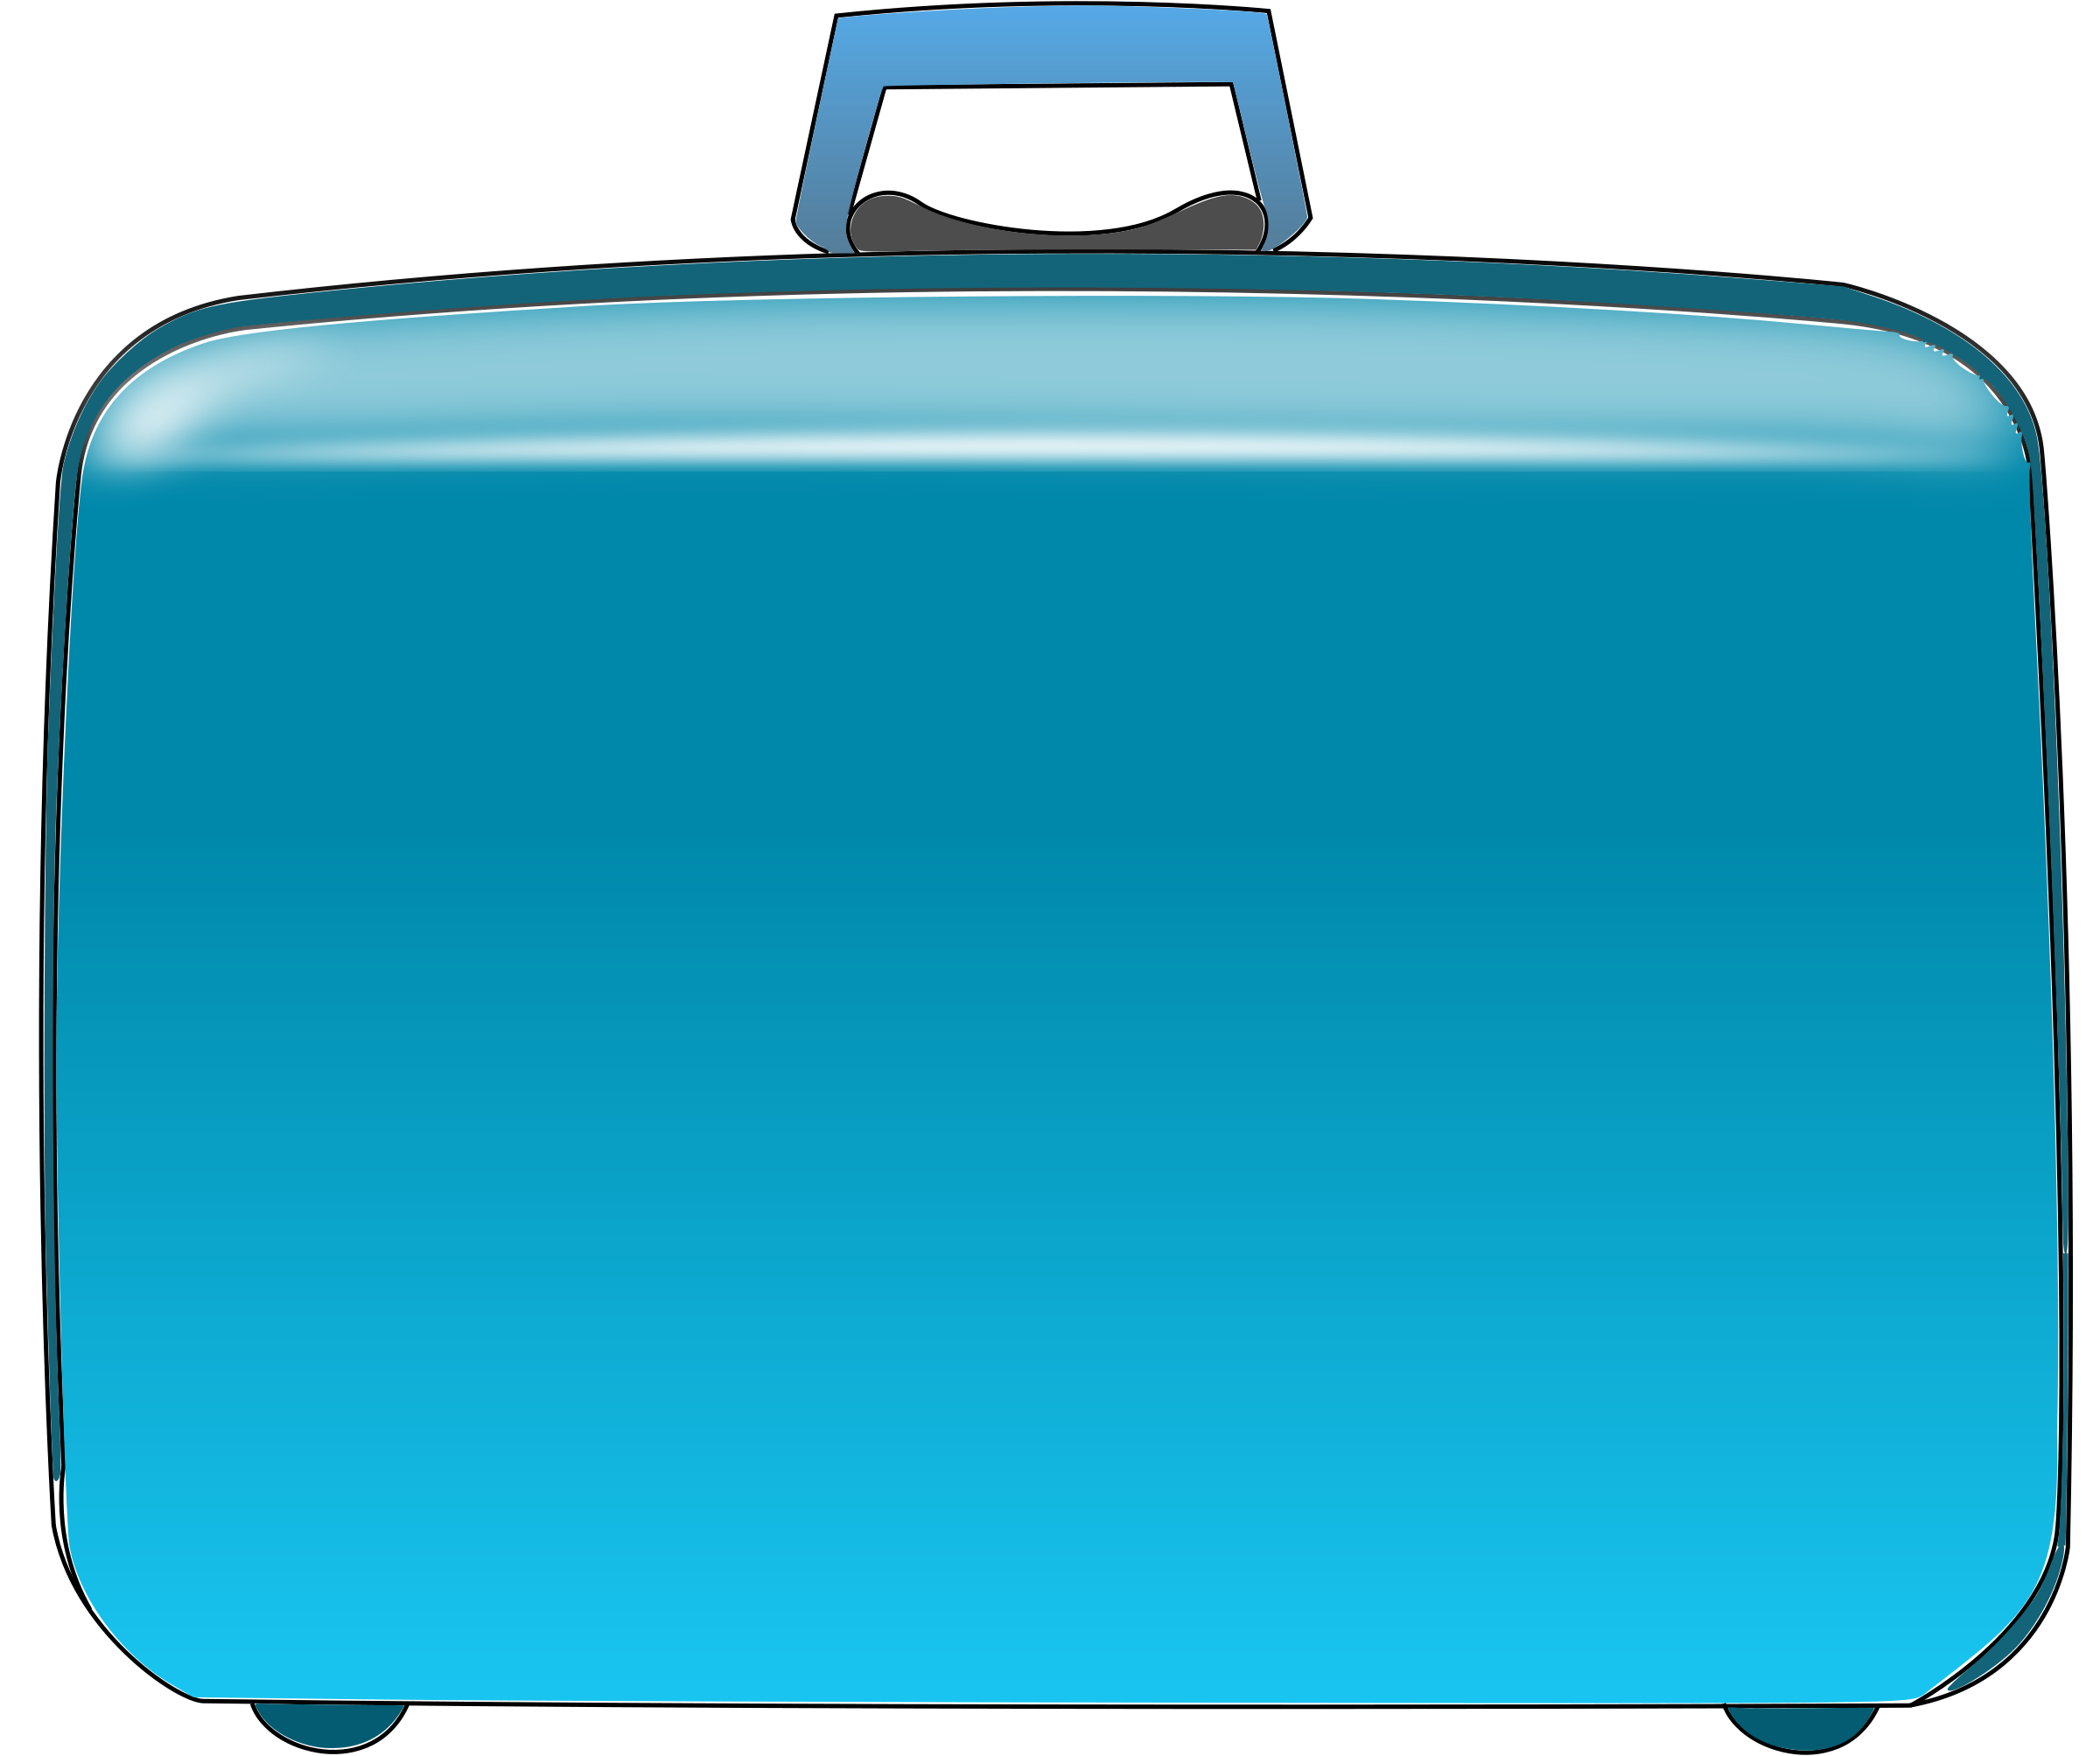 Luggage Clipart Free Travel Suitcase Clip Art